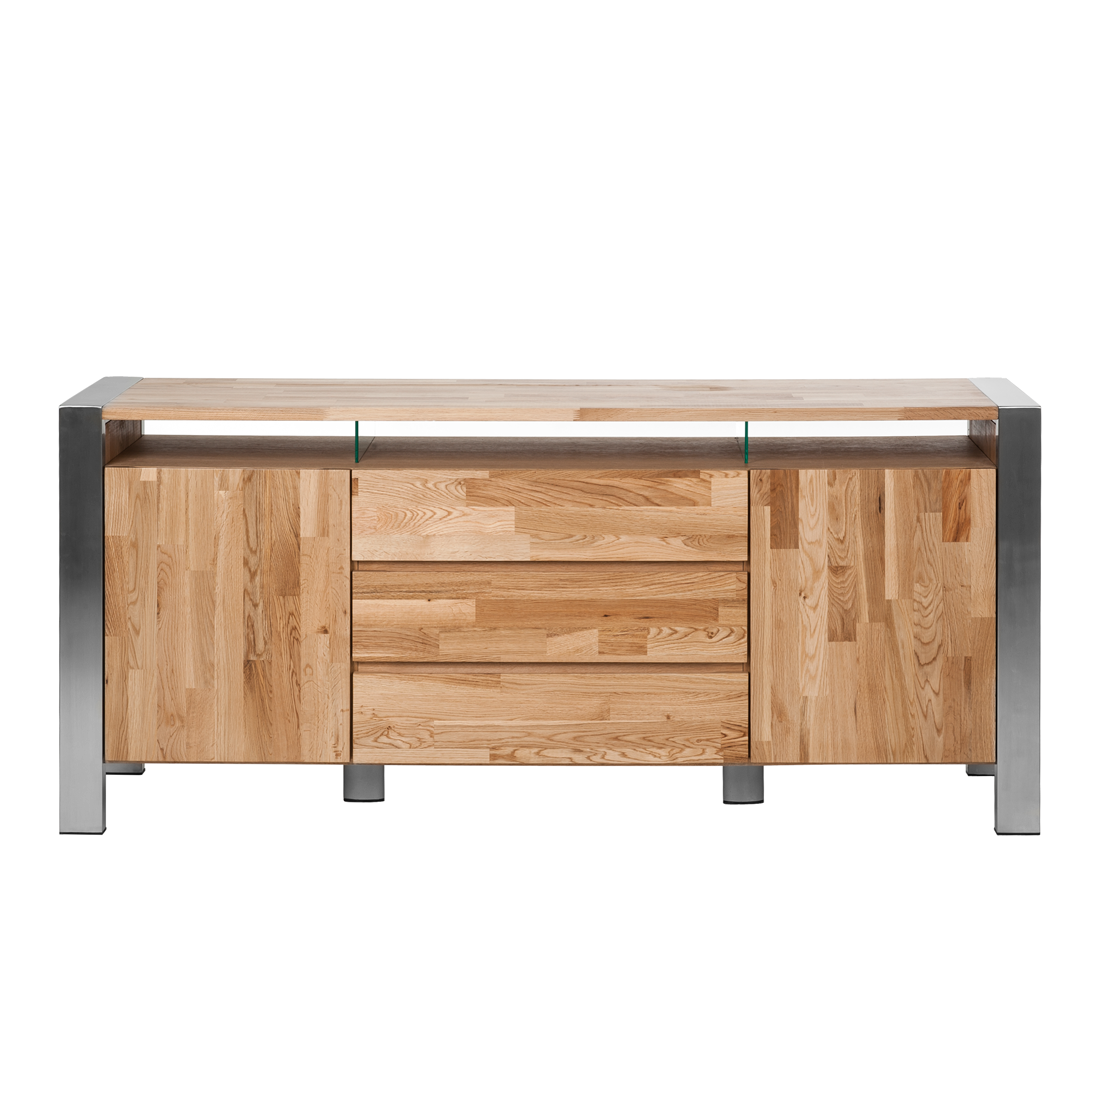 sideboard eiche massivholz edelstahl anrichte esszimmer buffet holz schrank neu ebay. Black Bedroom Furniture Sets. Home Design Ideas